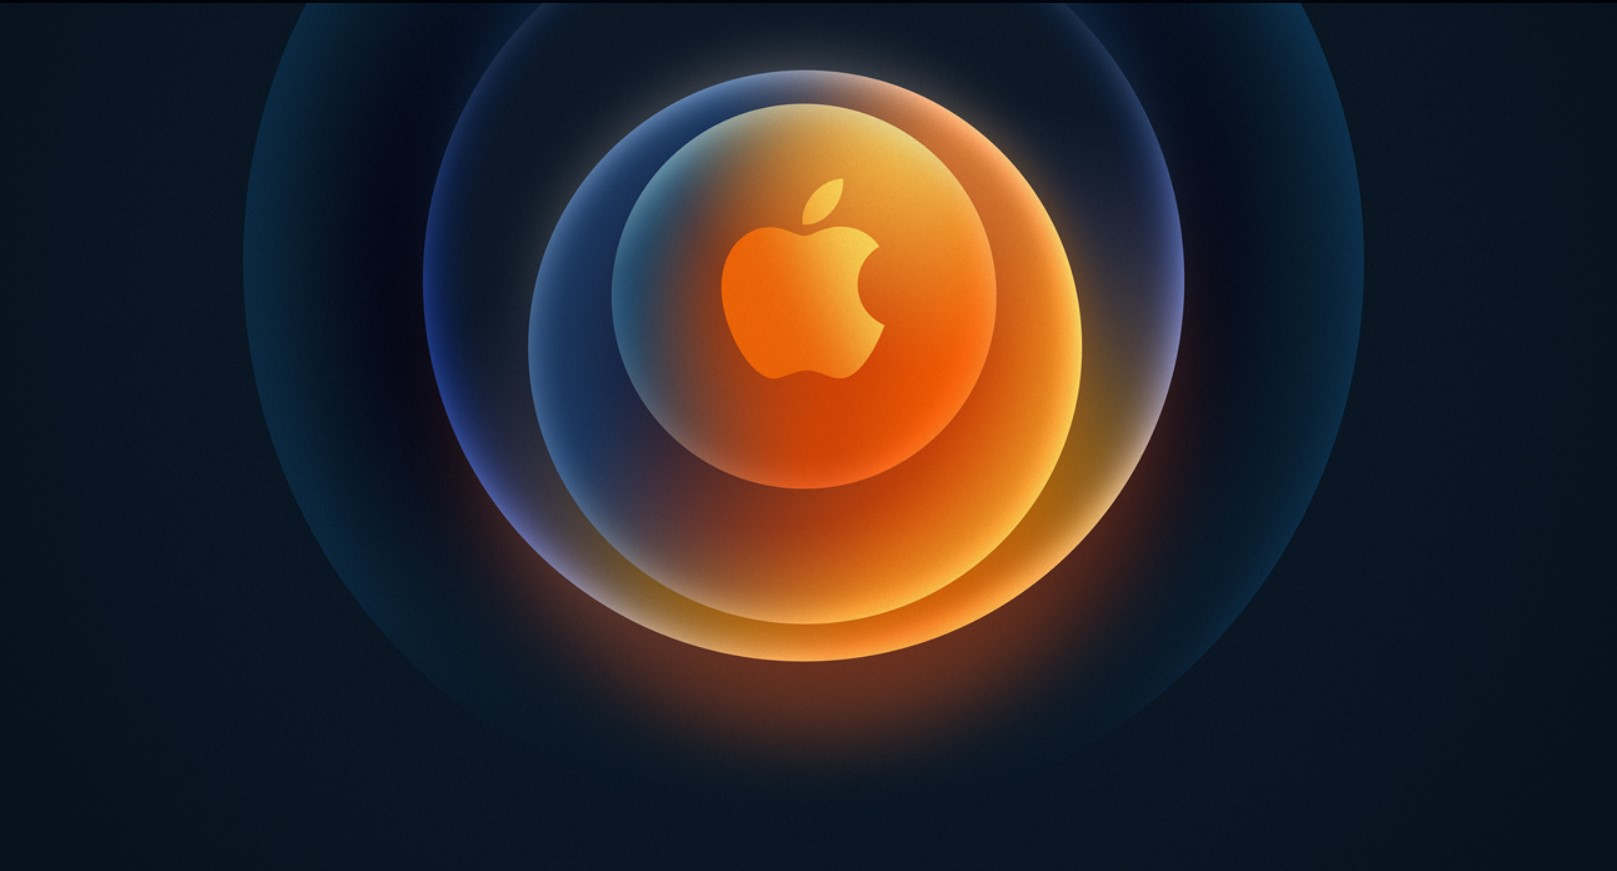 Download iPhone 12 Wallpapers | Apple Event 2020 ...